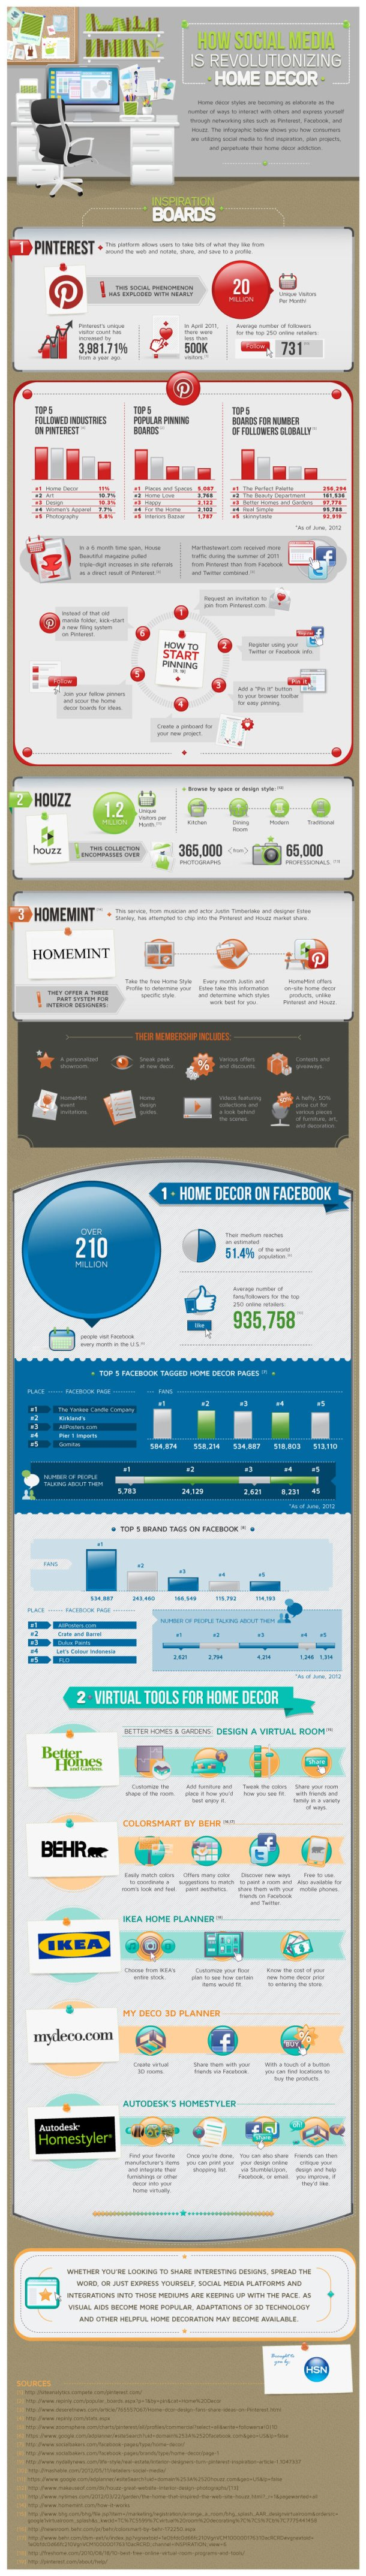 how-social-media-is-revolutionizing-home-decor_5033c767e3da6